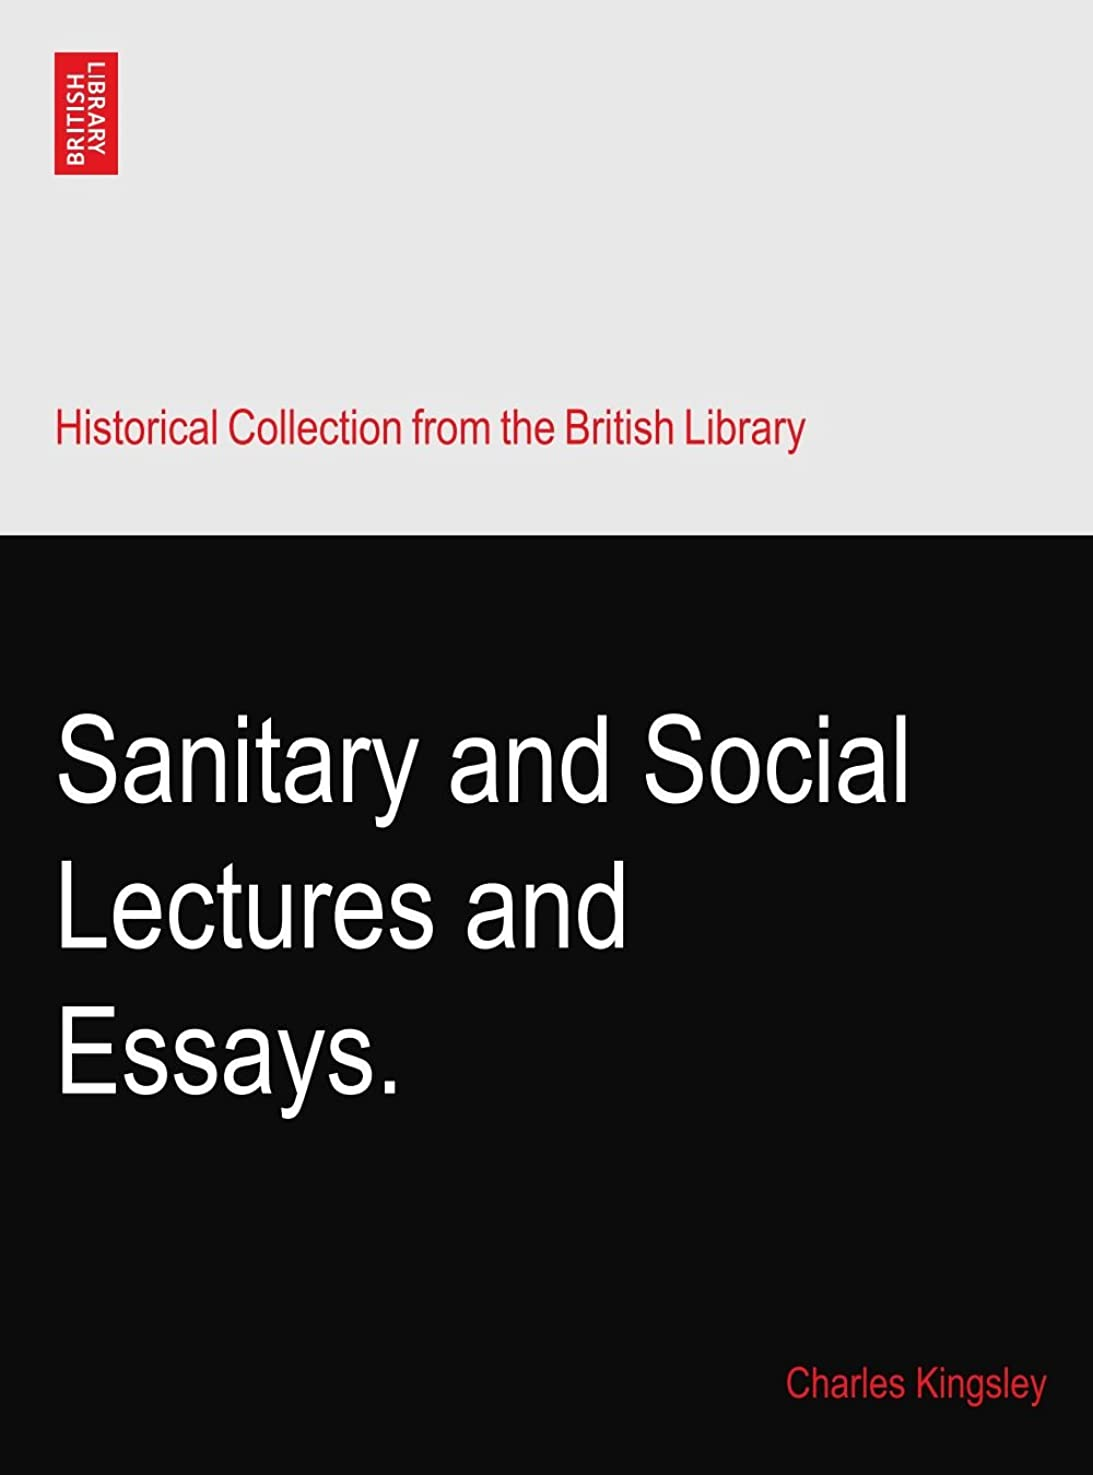 敬な謝る光沢Sanitary and Social Lectures and Essays.